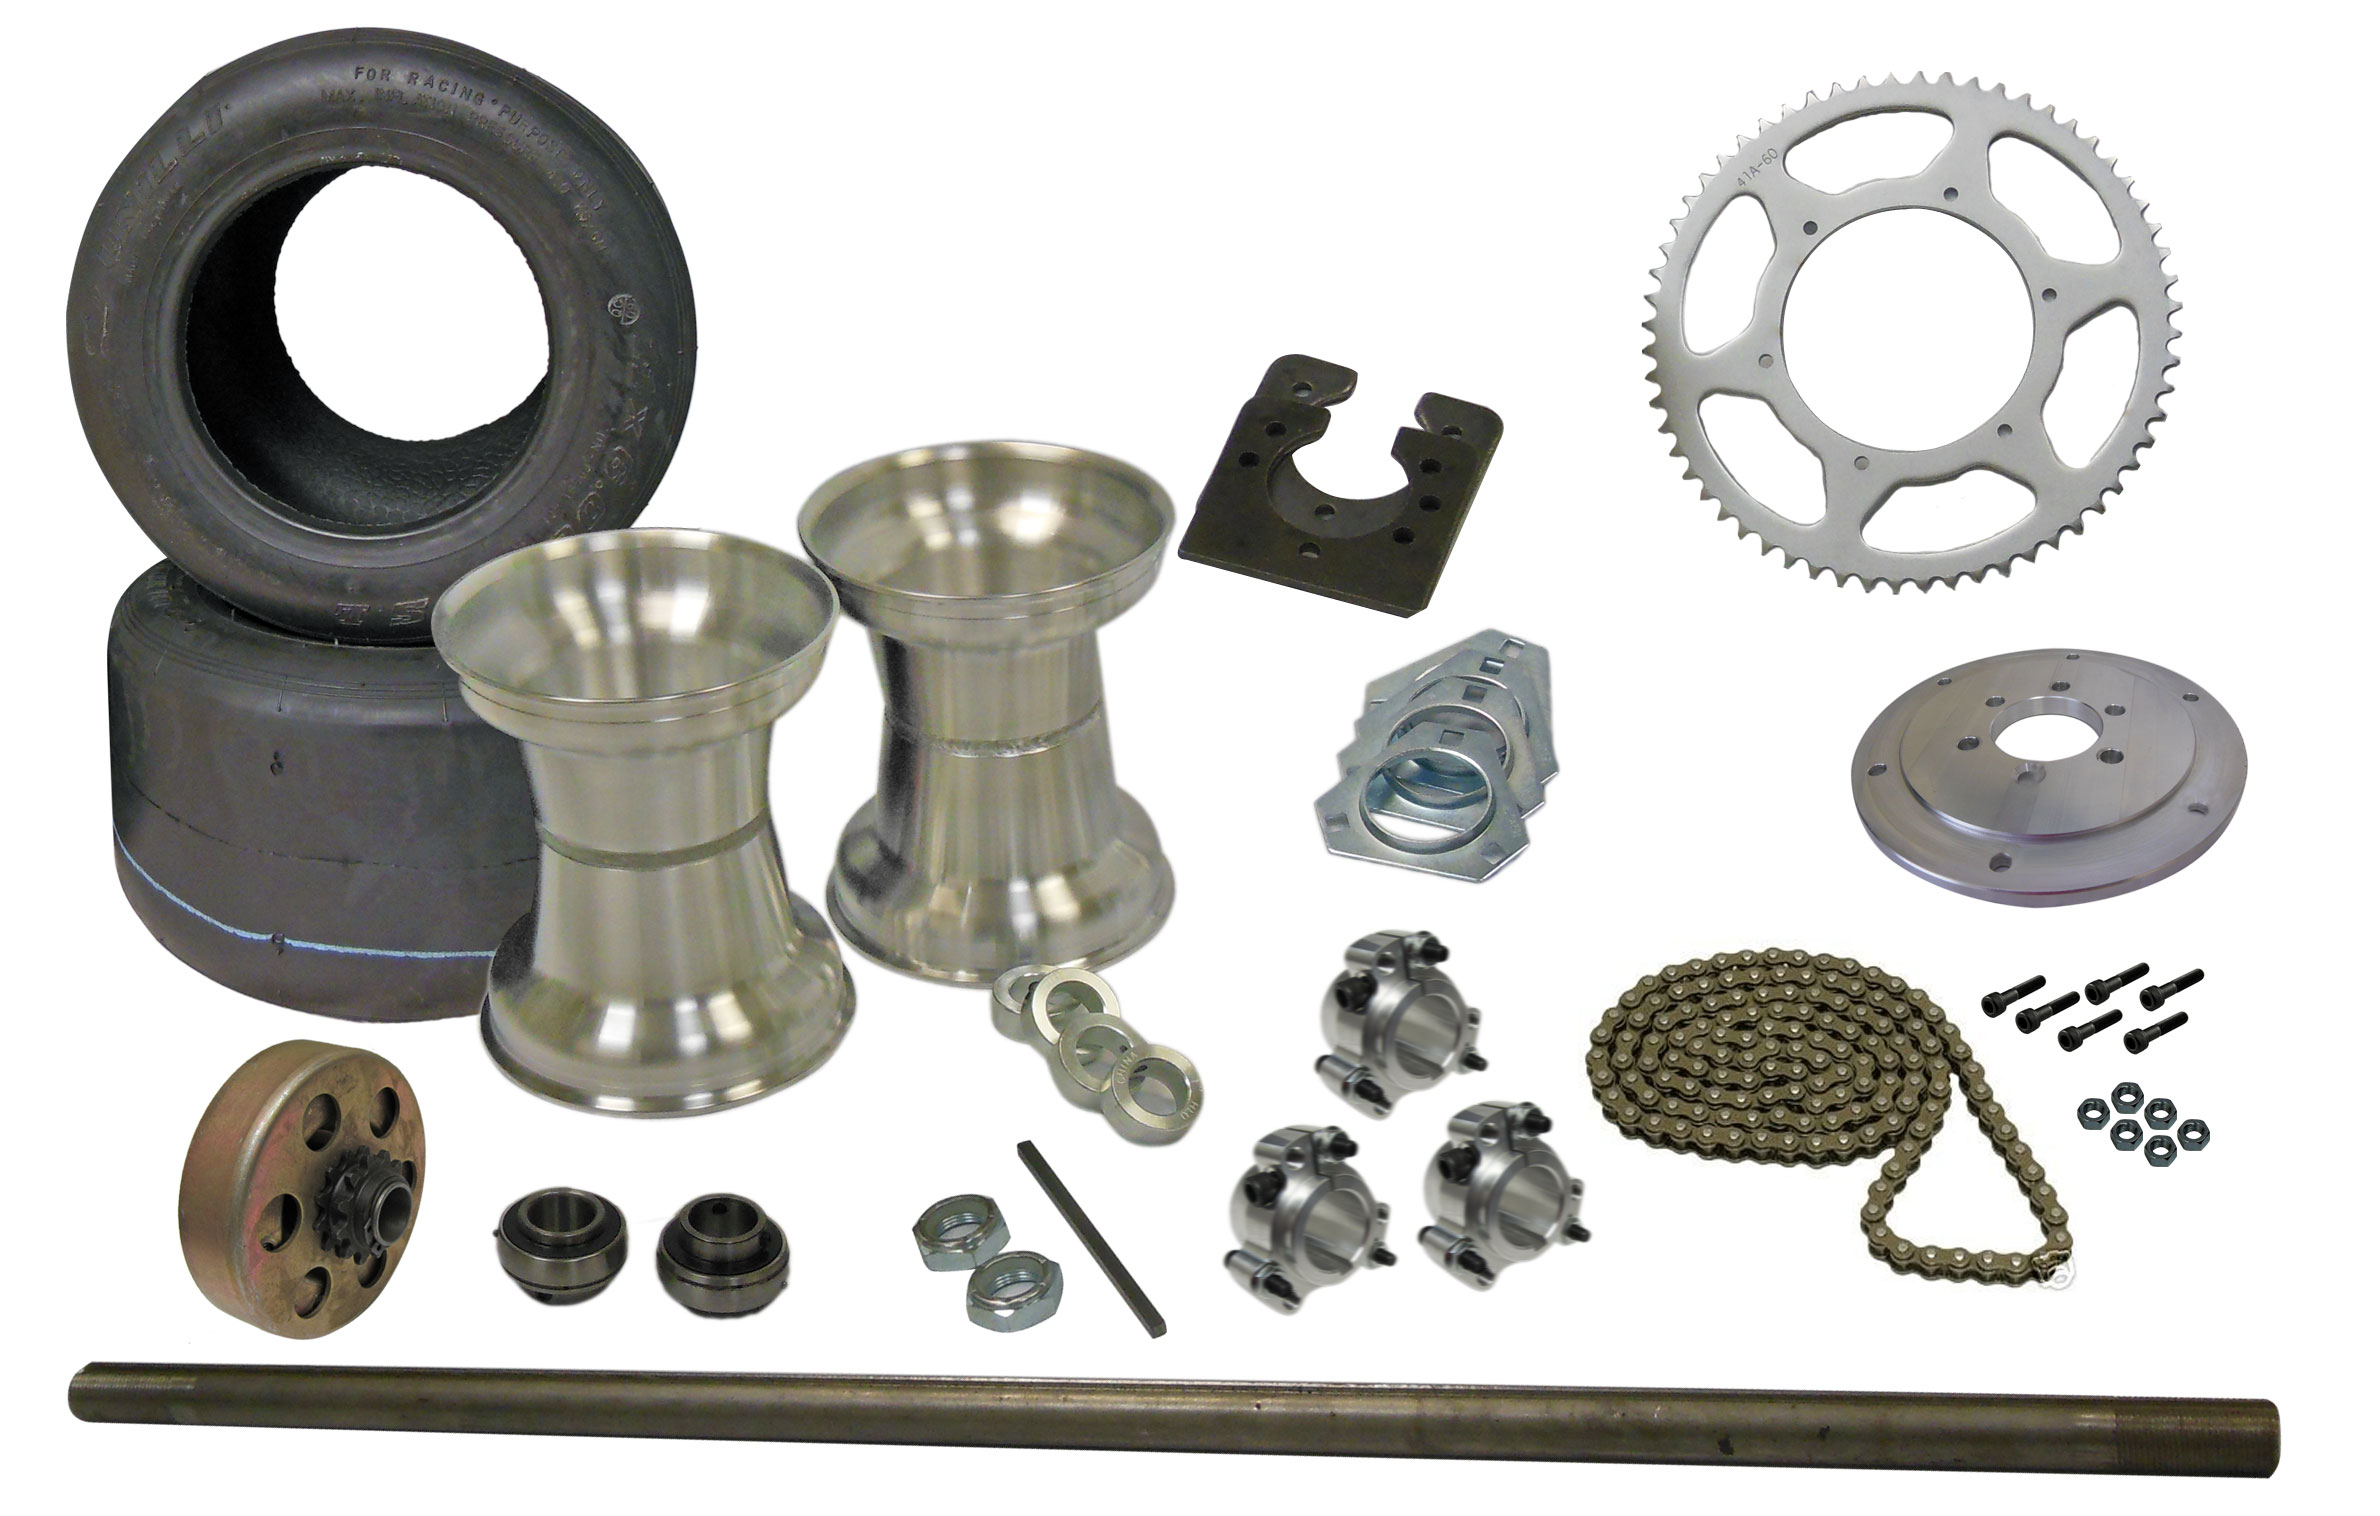 Drift Trike Axle Kit with Tires, Rims, & Clutch (#40 Chain) | 333020-Clutch  | BMI Karts And Parts